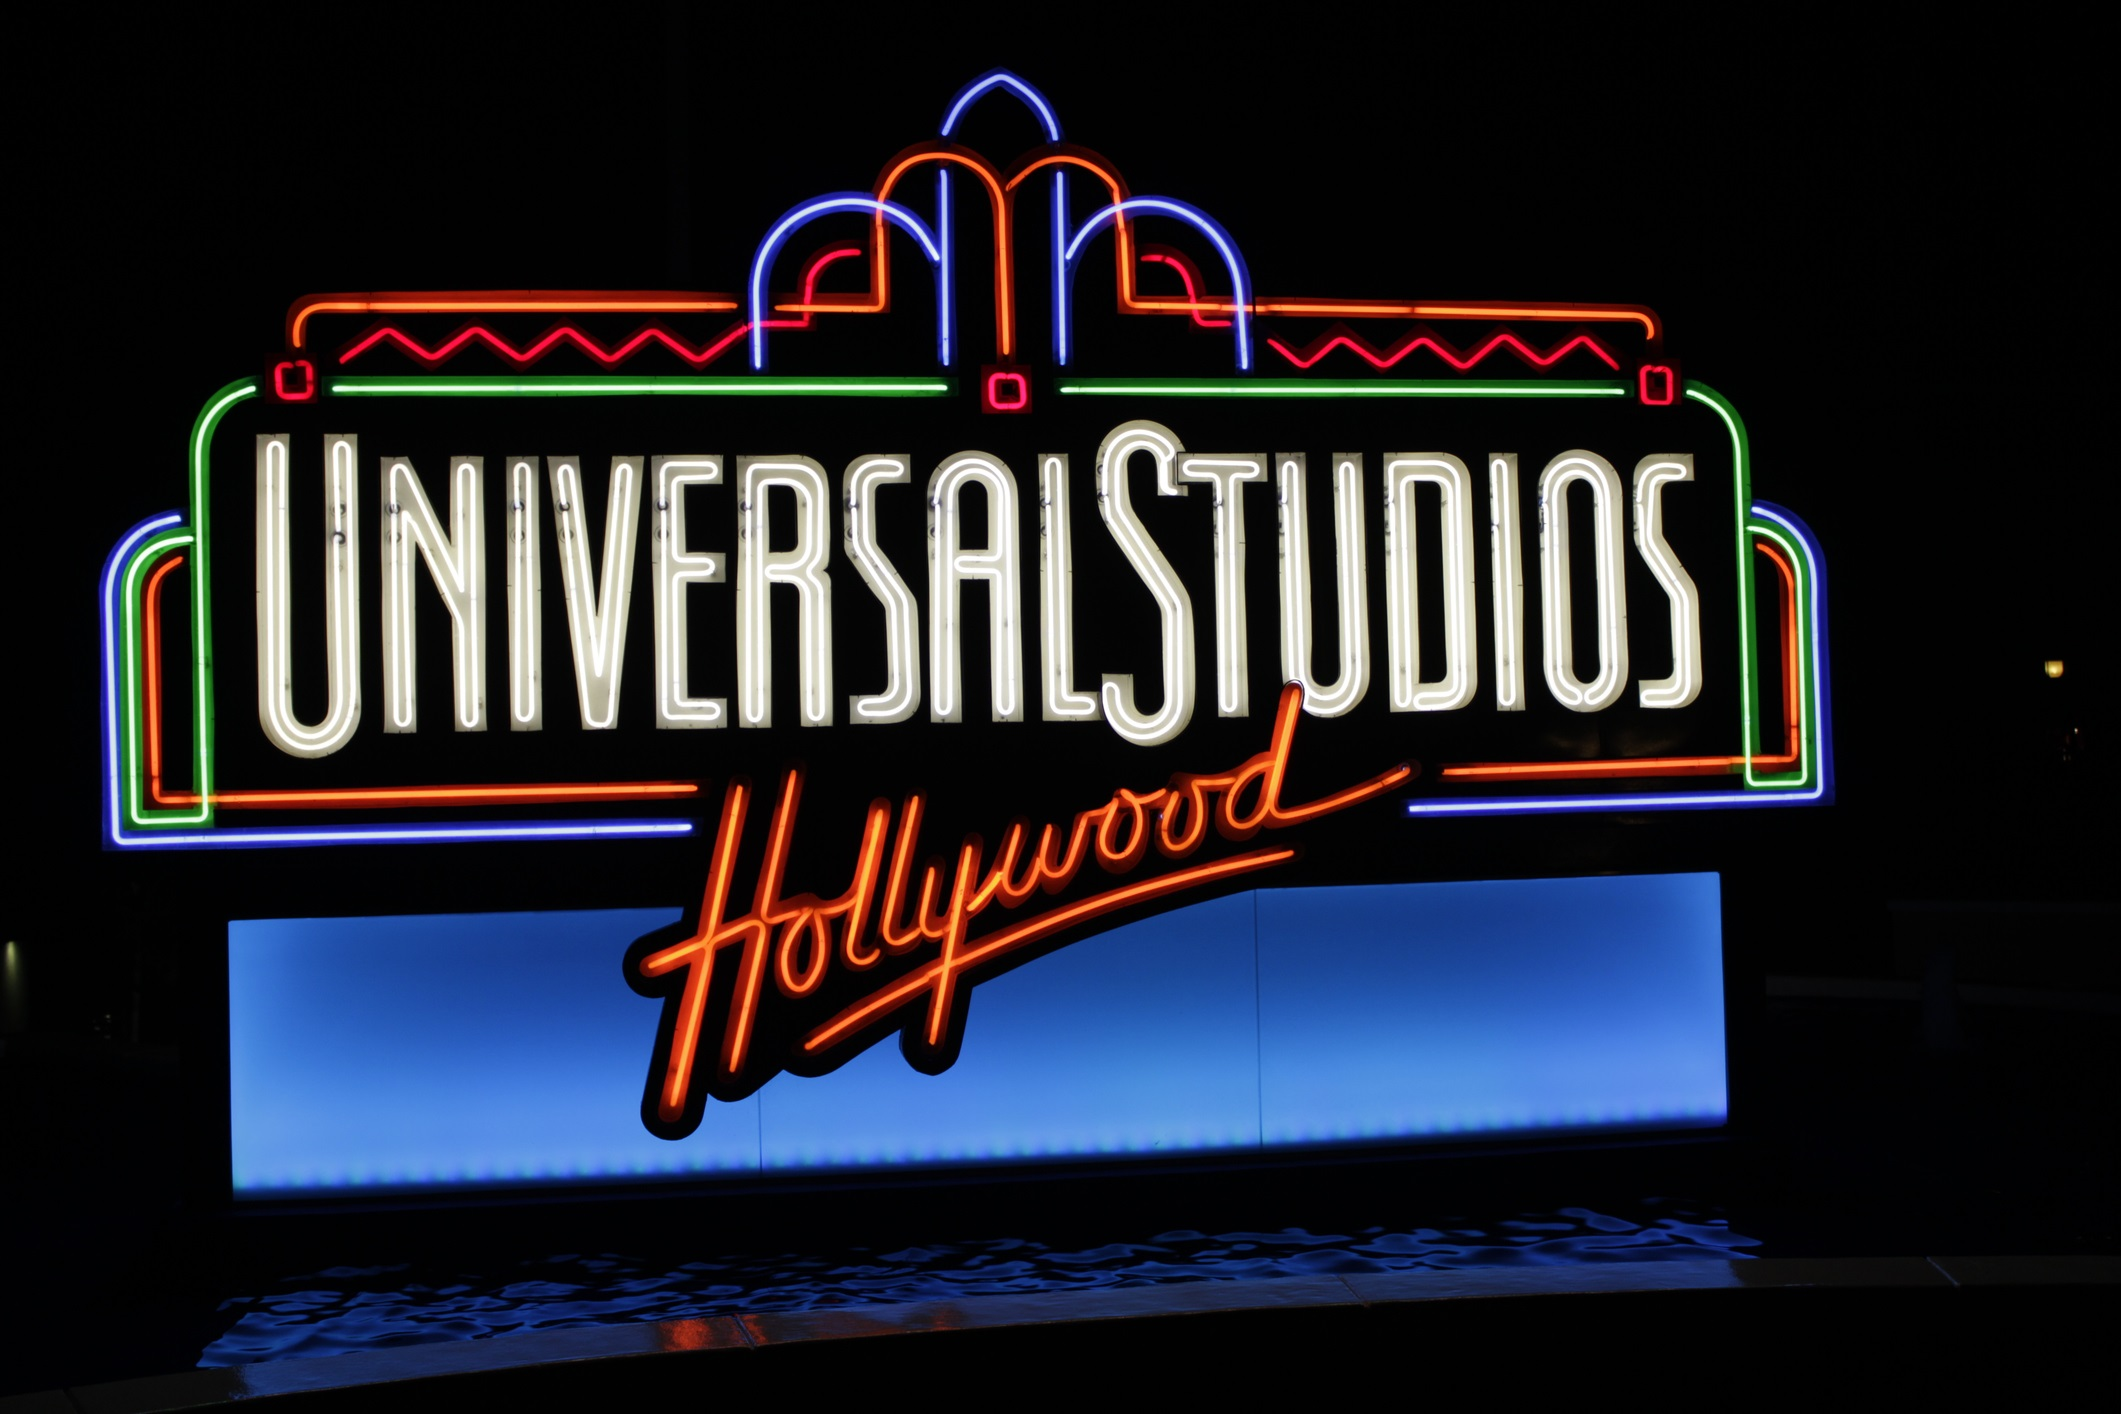 """Los Angeles, CA, USA - October 23rd, 2011: Universal Studios Hollywood neon sign at the entrance of the California theme park."""